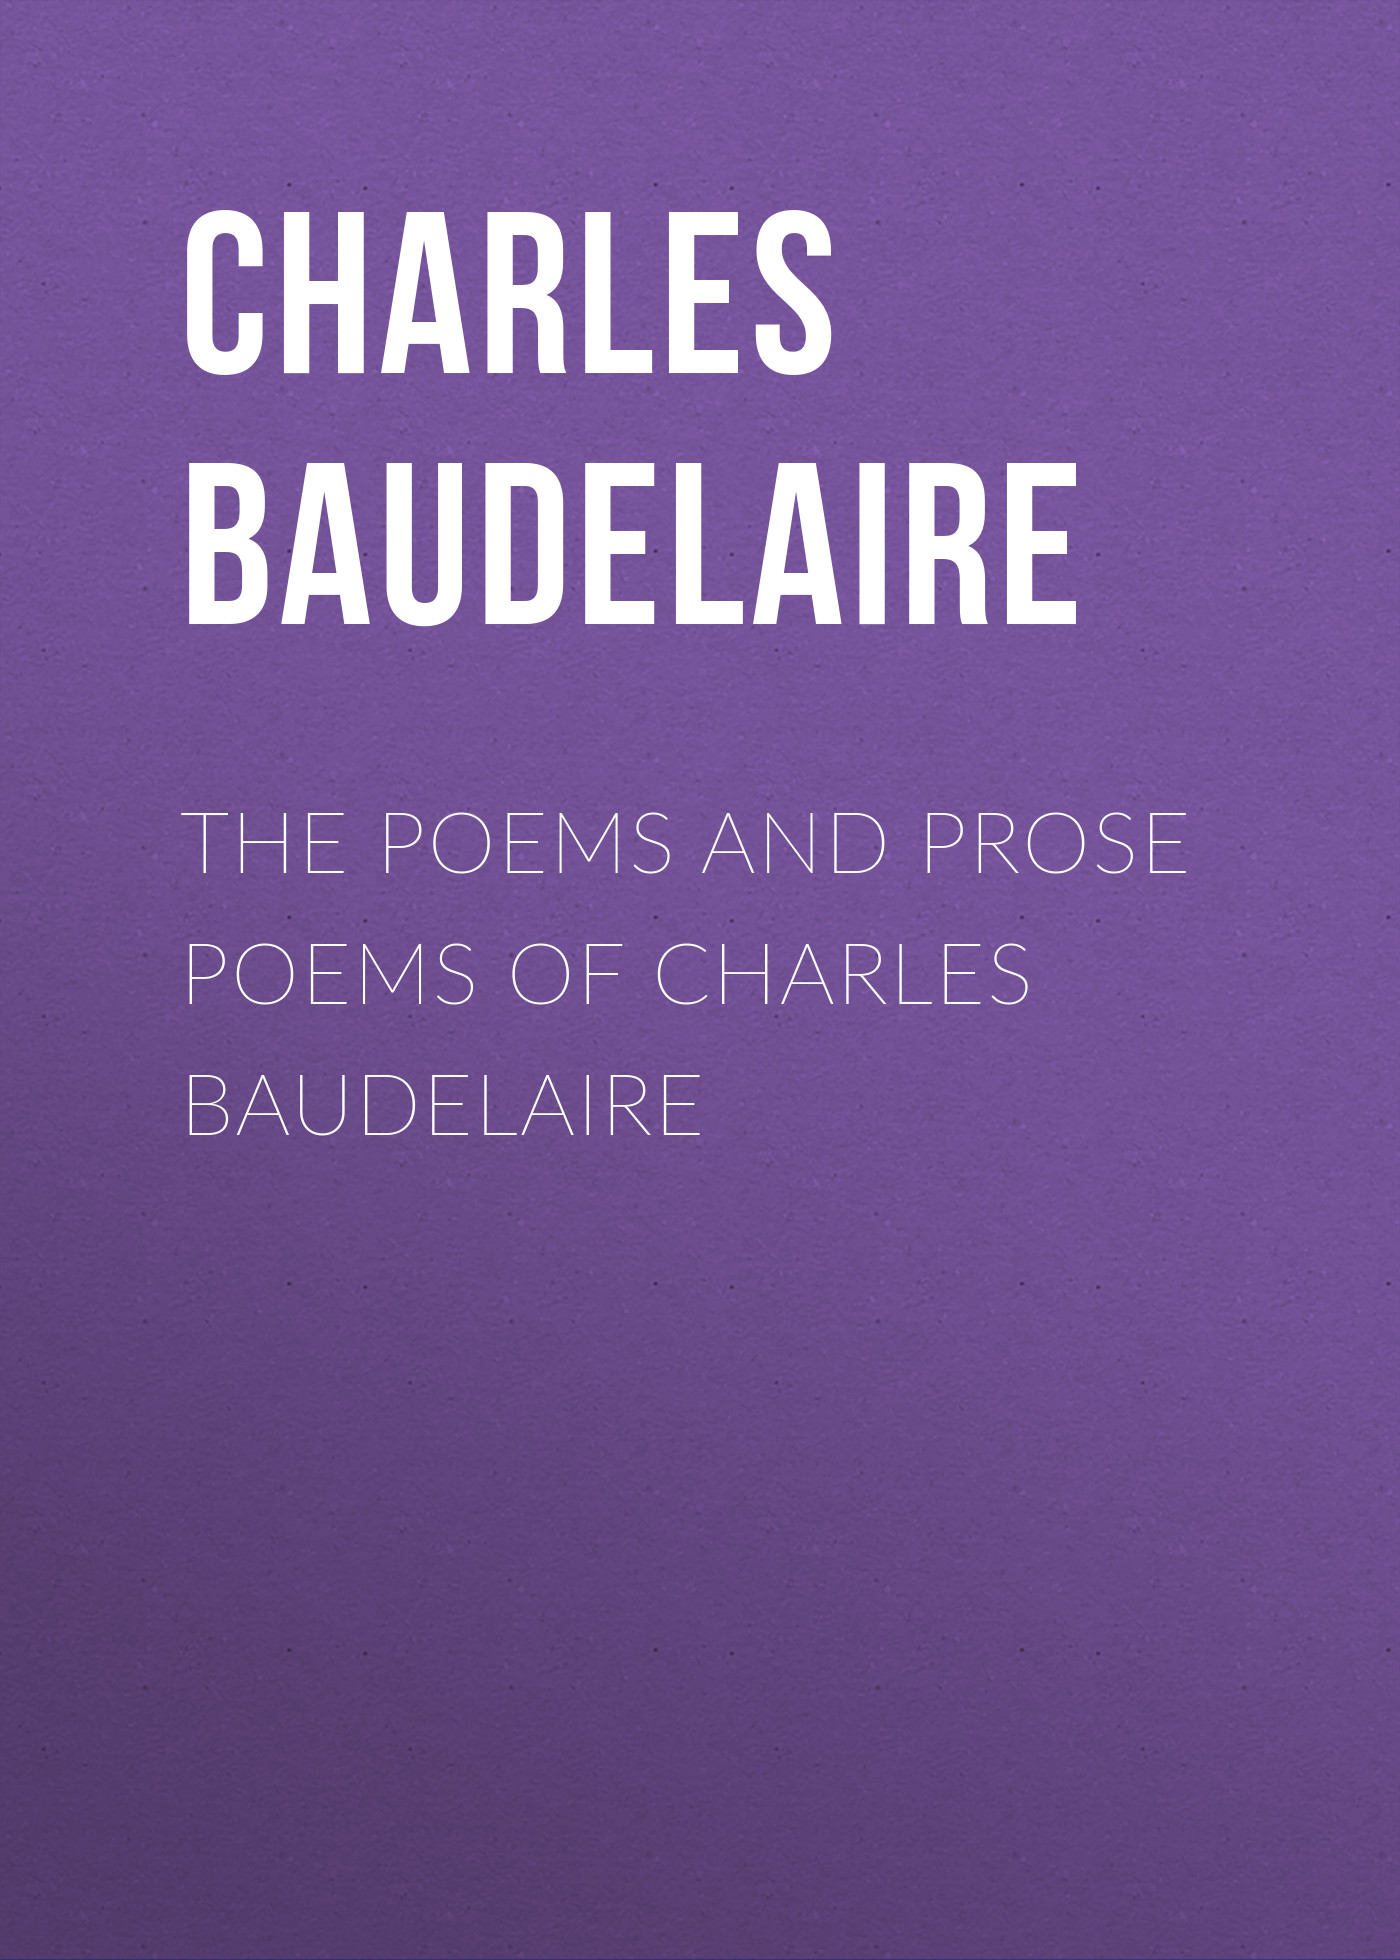 Baudelaire Charles The Poems and Prose Poems of Charles Baudelaire scroll 203x153